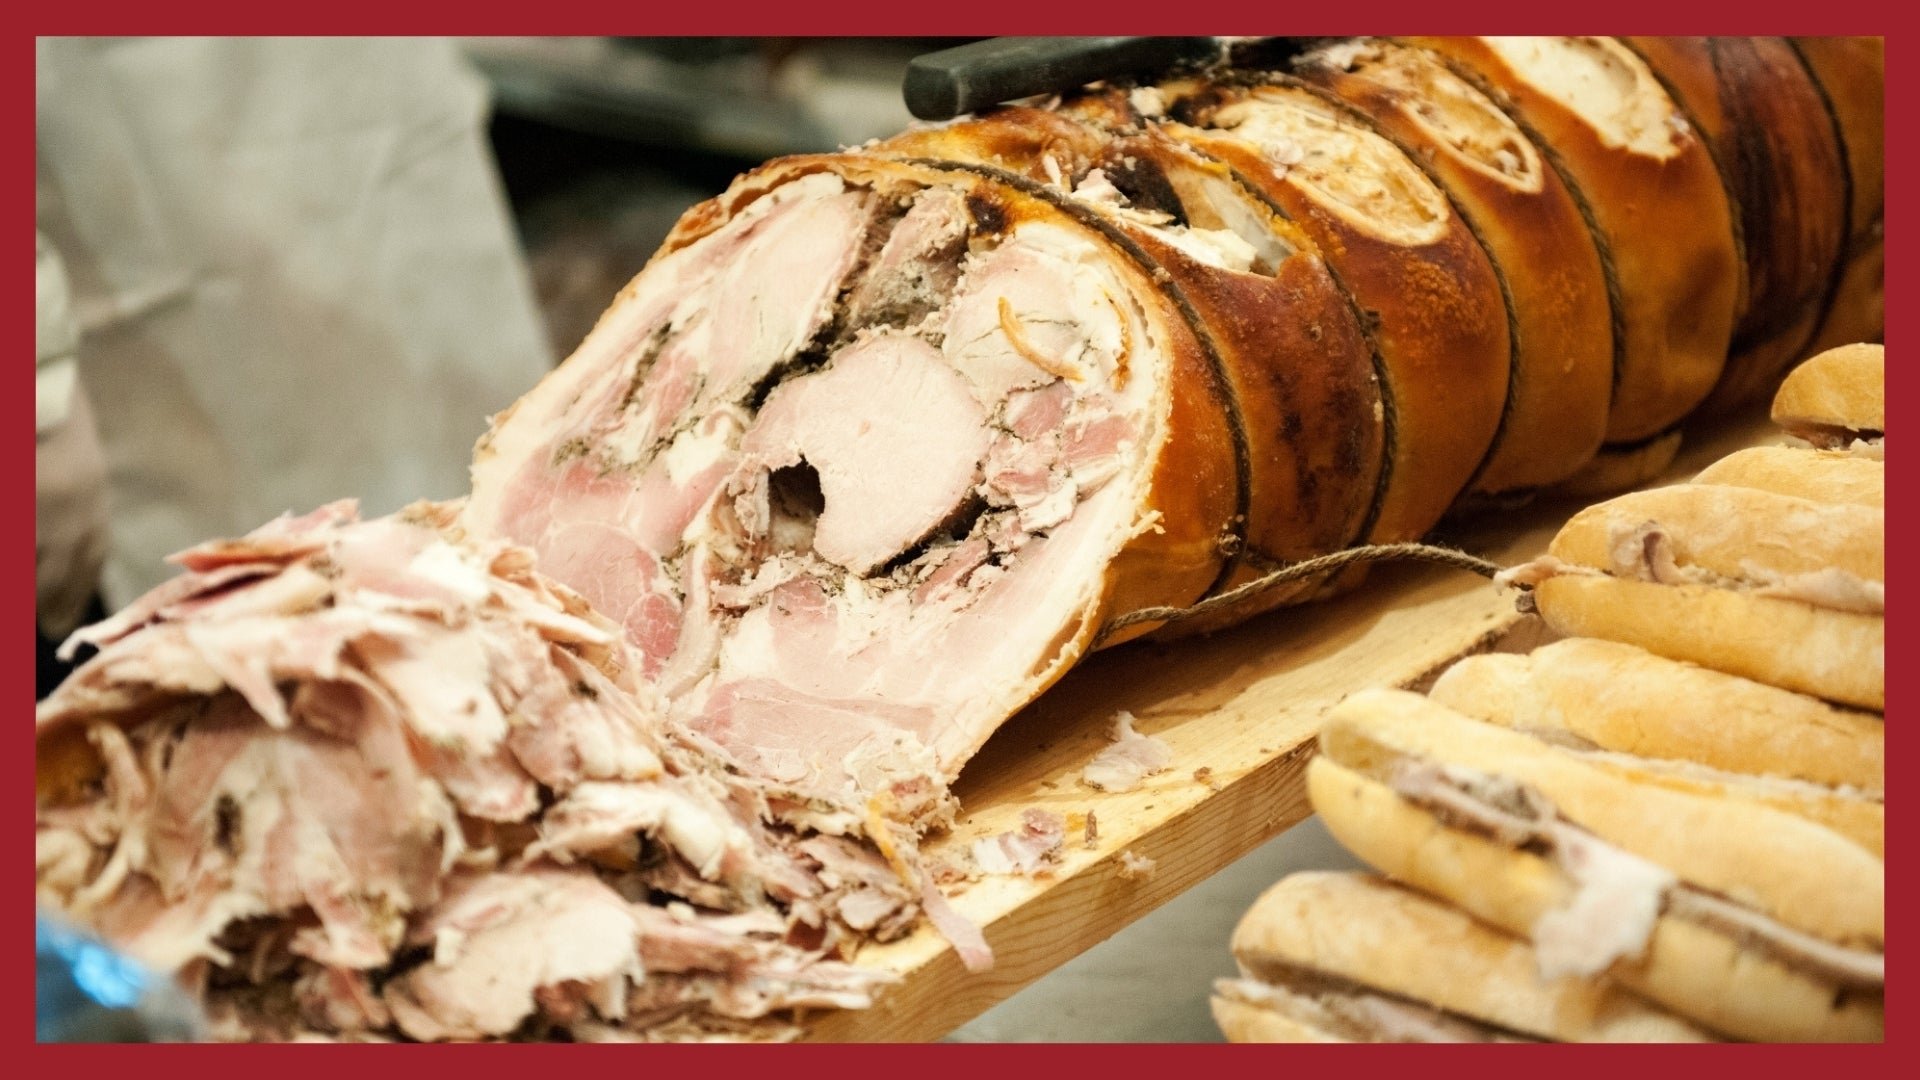 A whole porchetta being cut up into thin slices with porchetta sandwiches in the foreground.